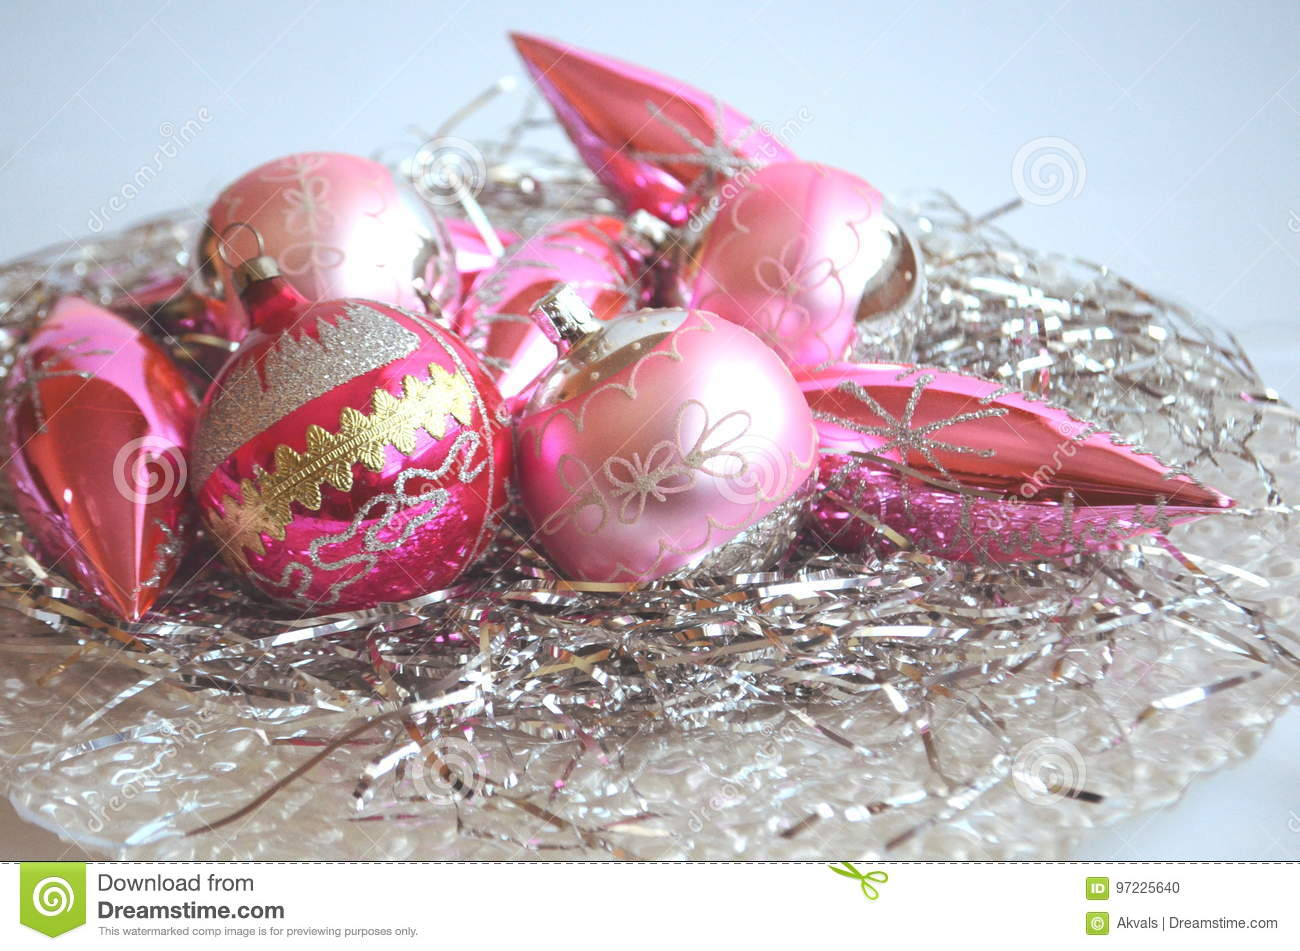 Bright Pink Christmas Tree Bauble Ball Ornaments On Silver Hair Decoration Stock Photo Image Of Holidays Bright 97225640